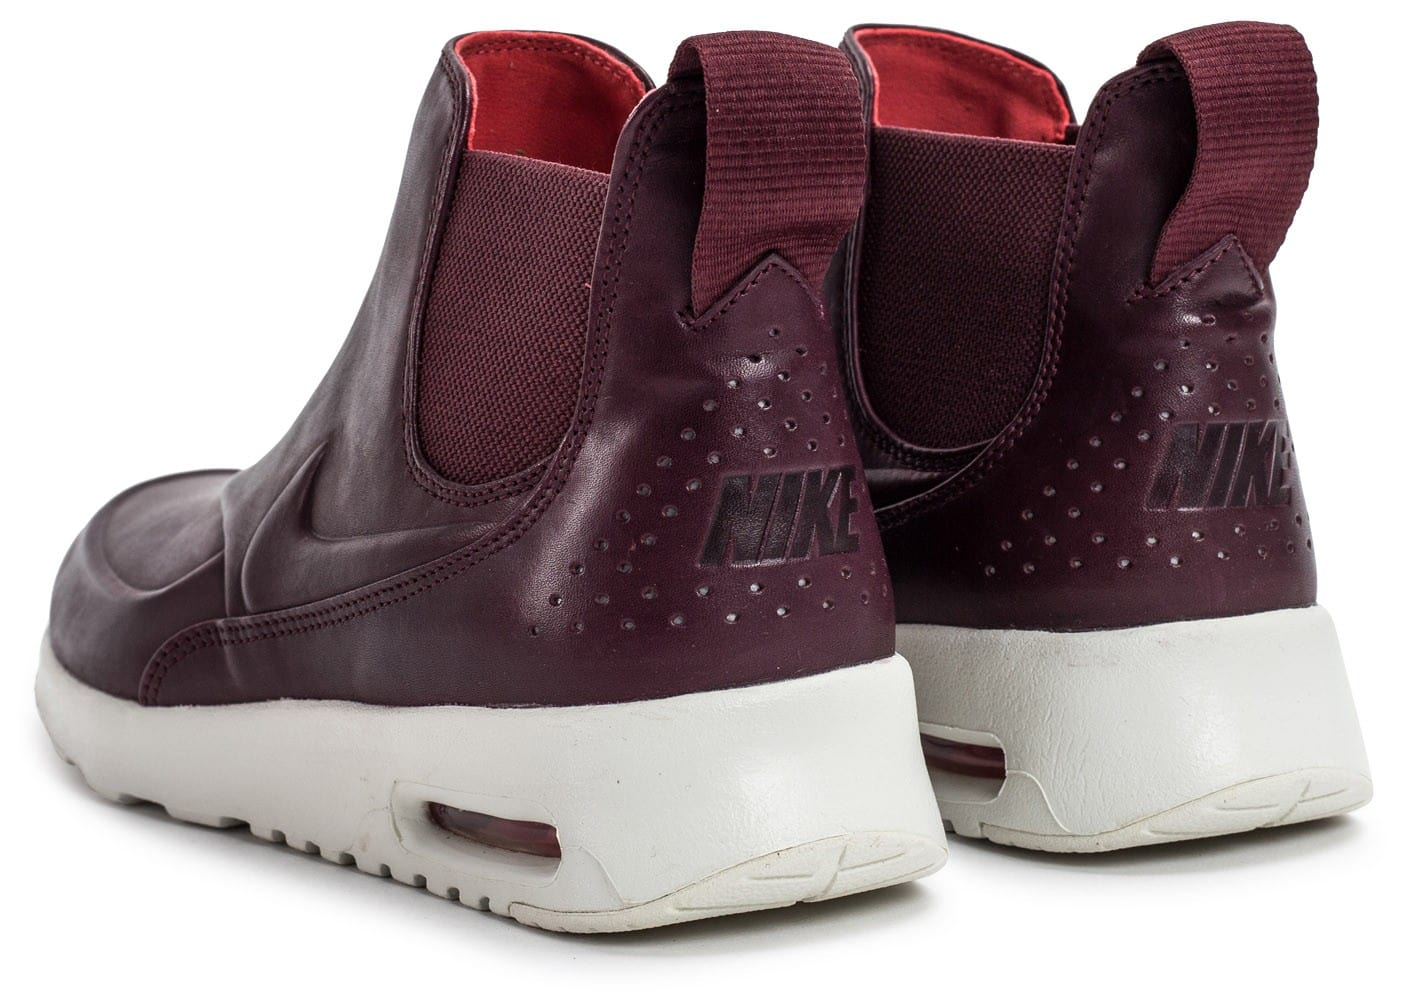 Nike Baskets montantes Air Max Thea Mid Marron Femme